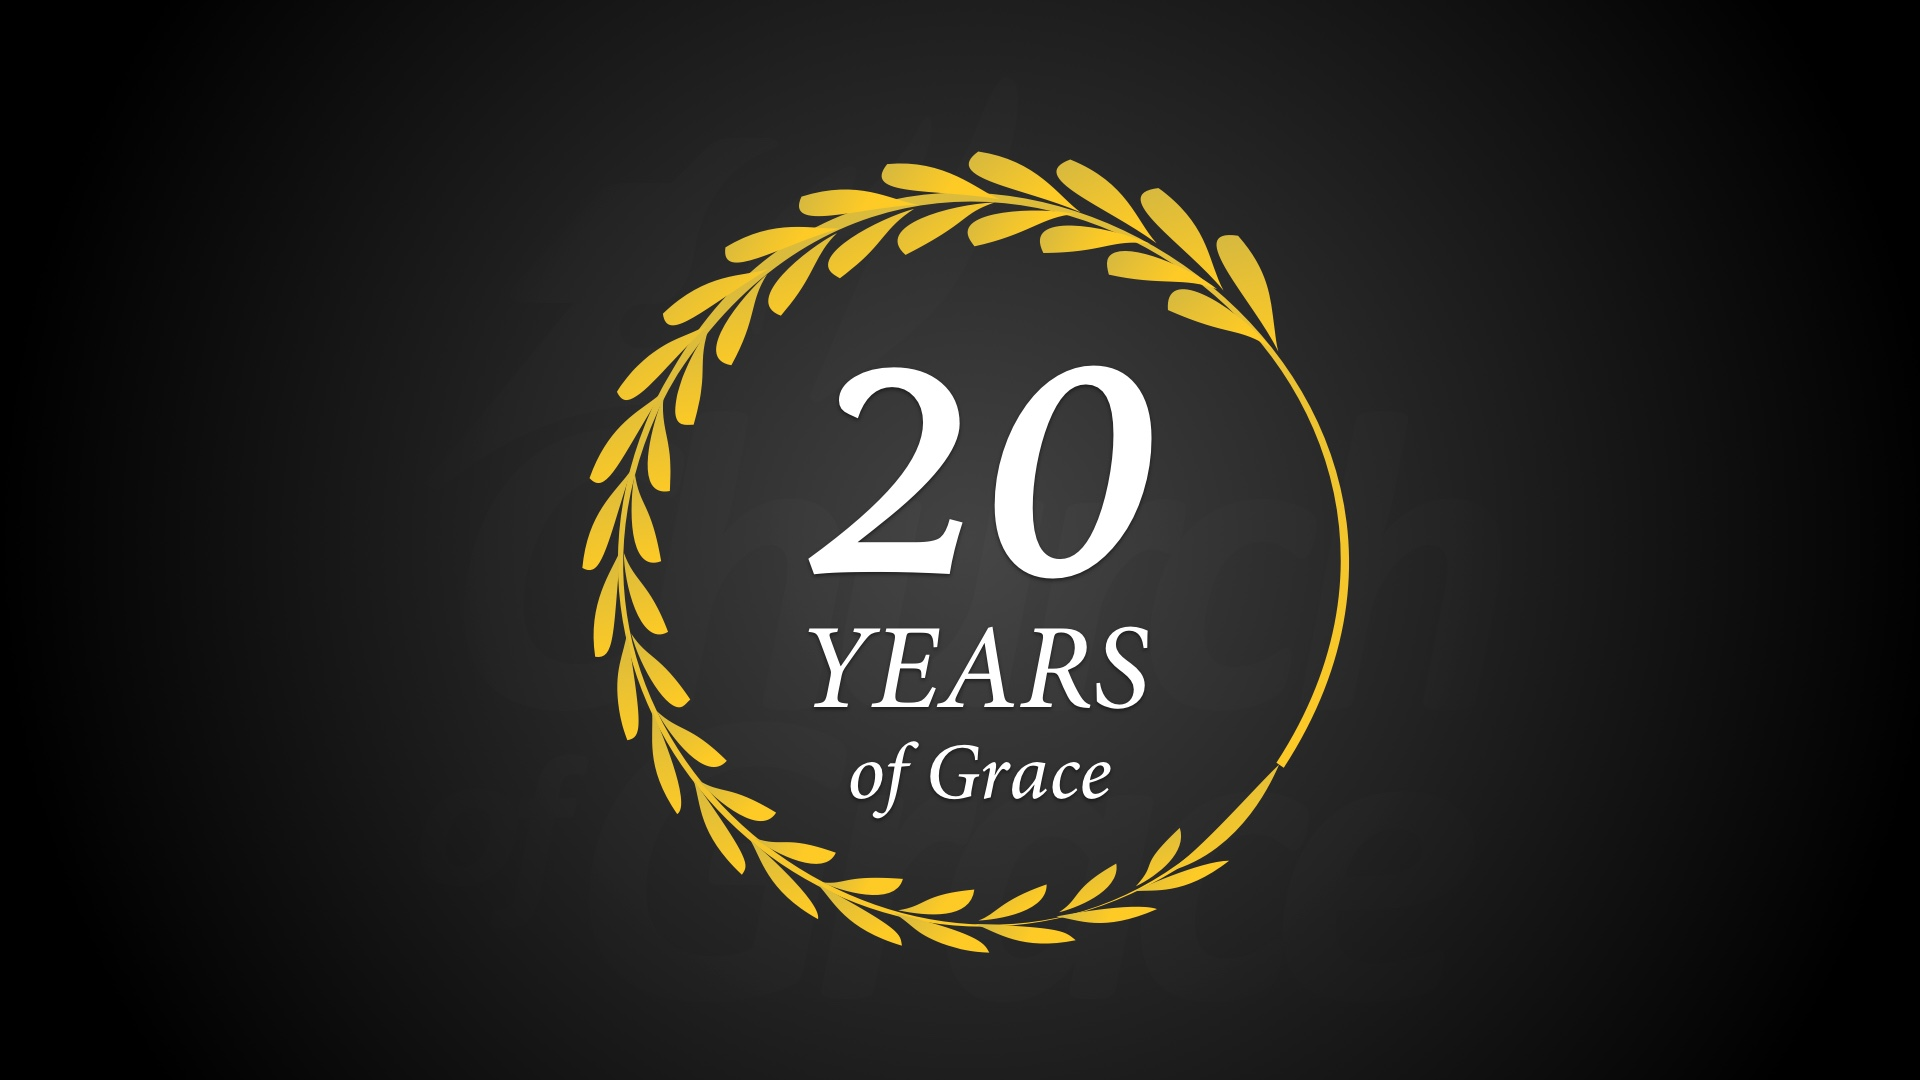 20 Years of Grace